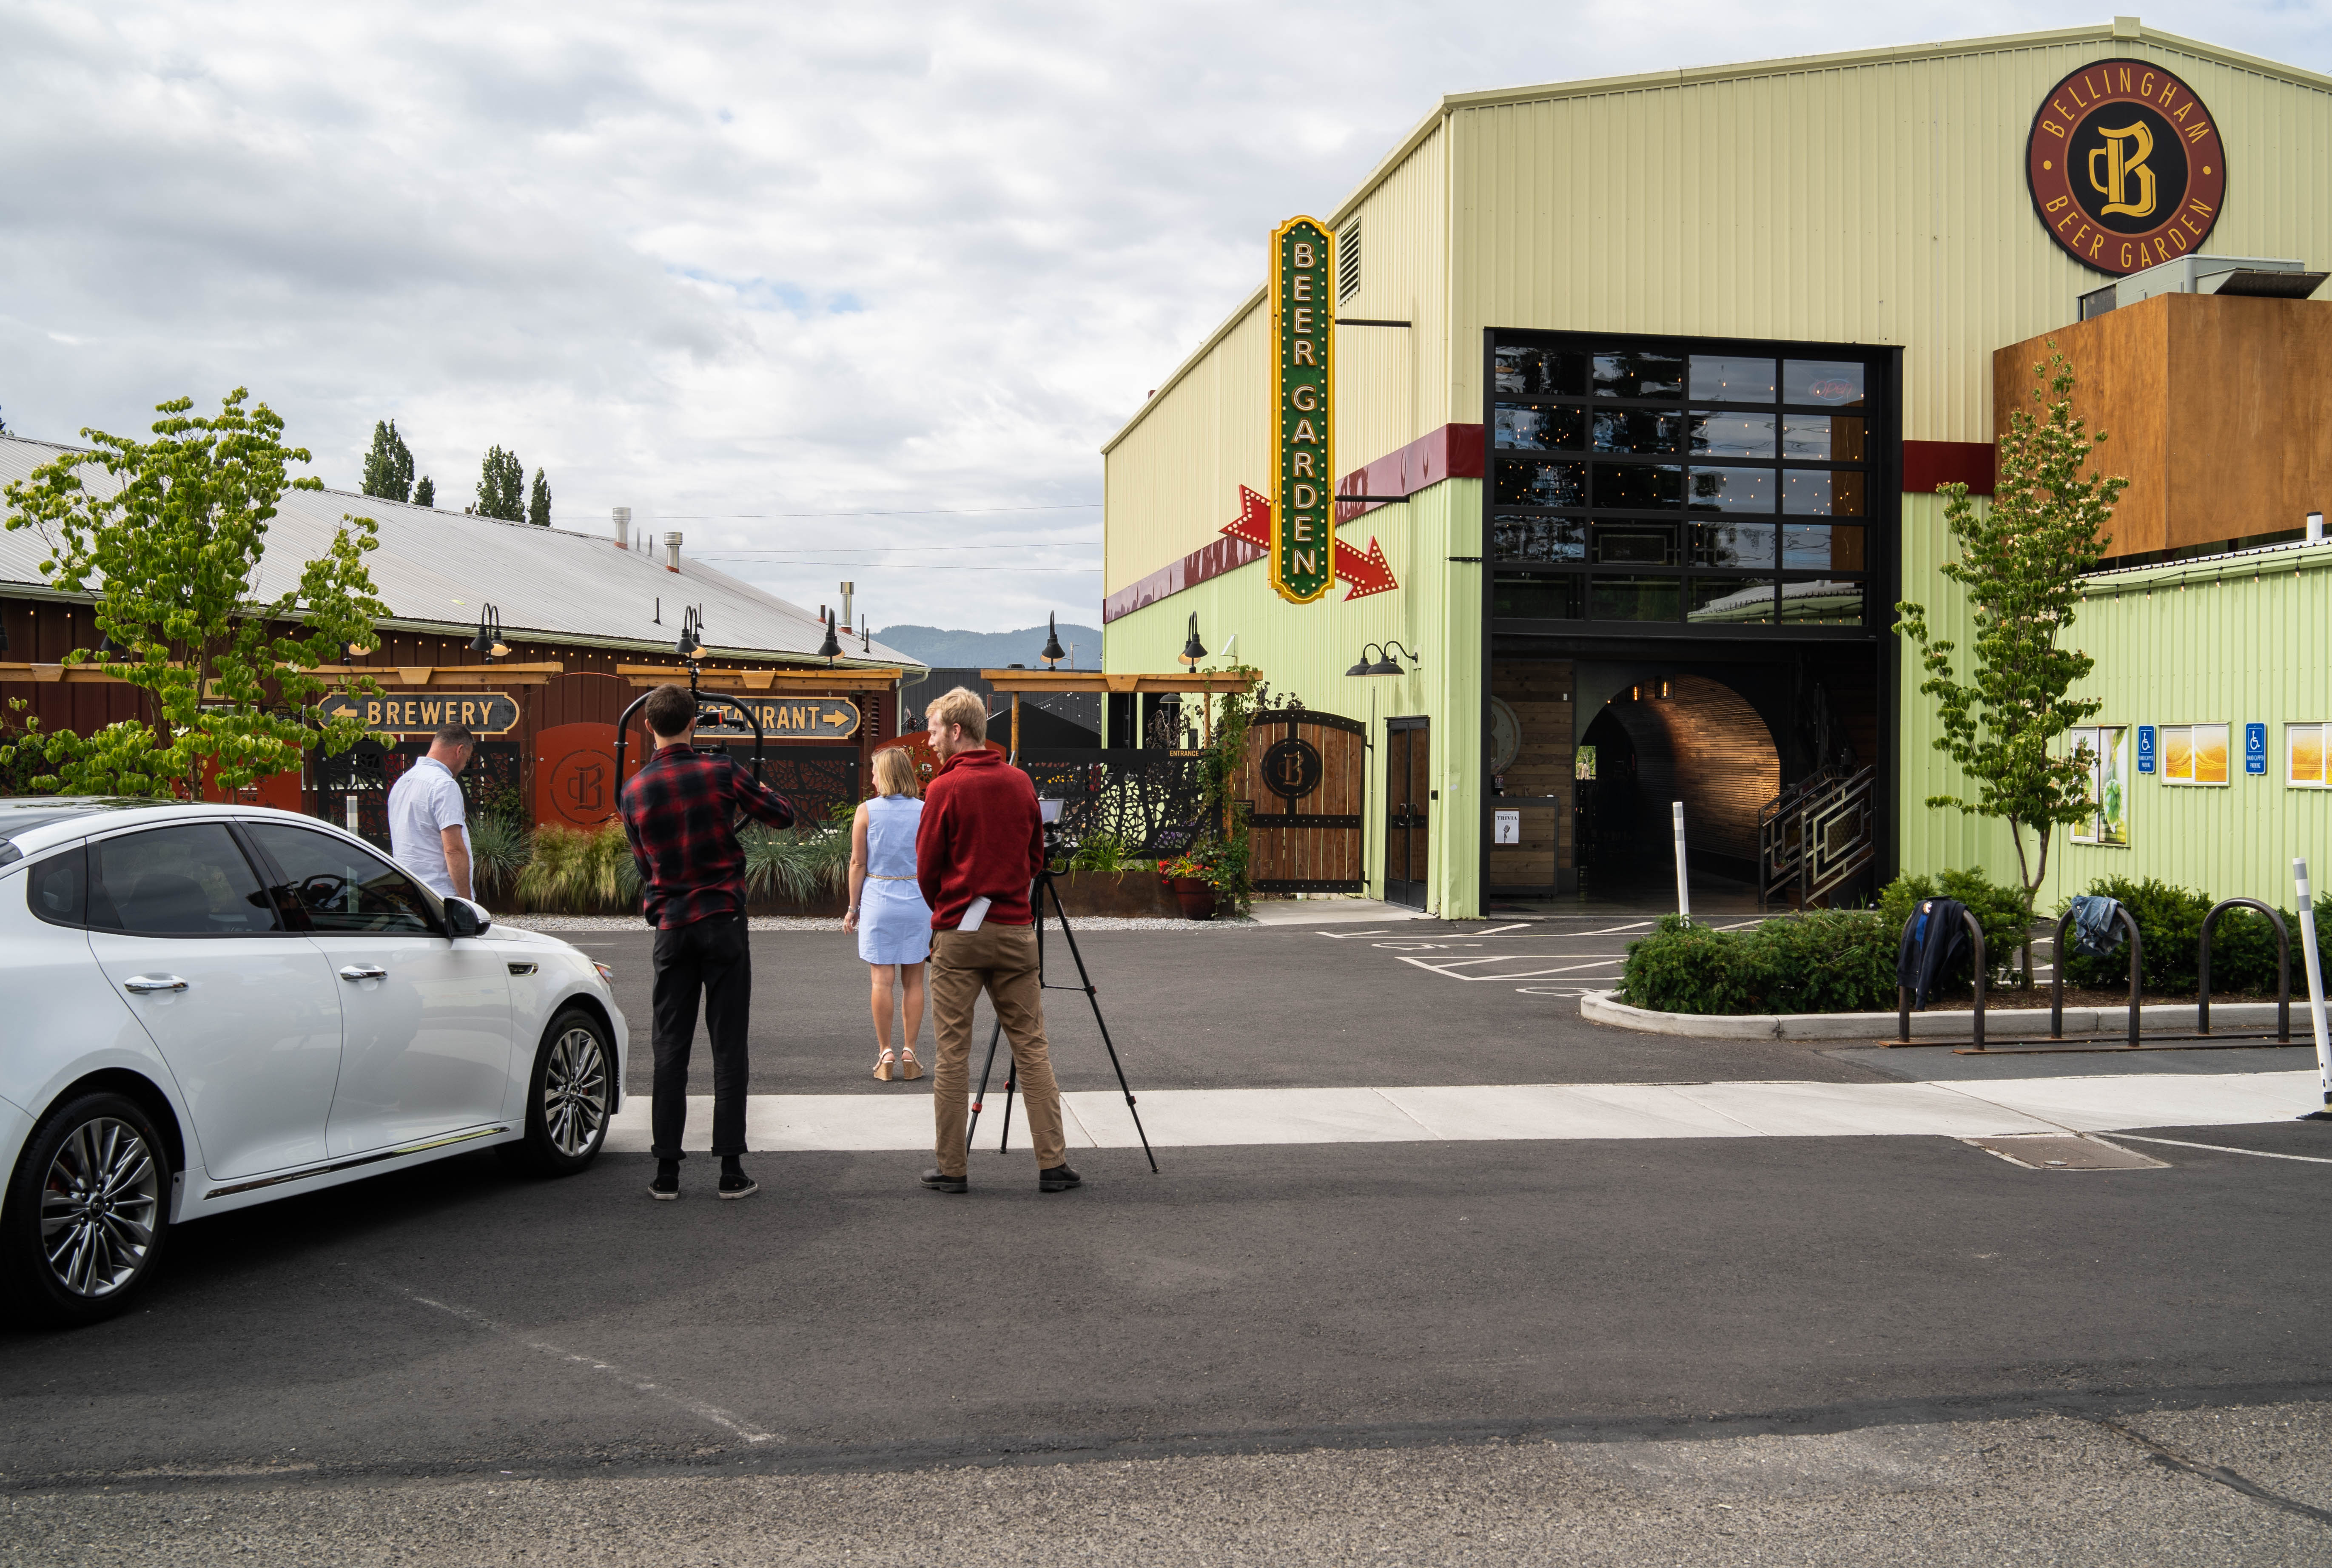 Car commercial being shot outside a brewery